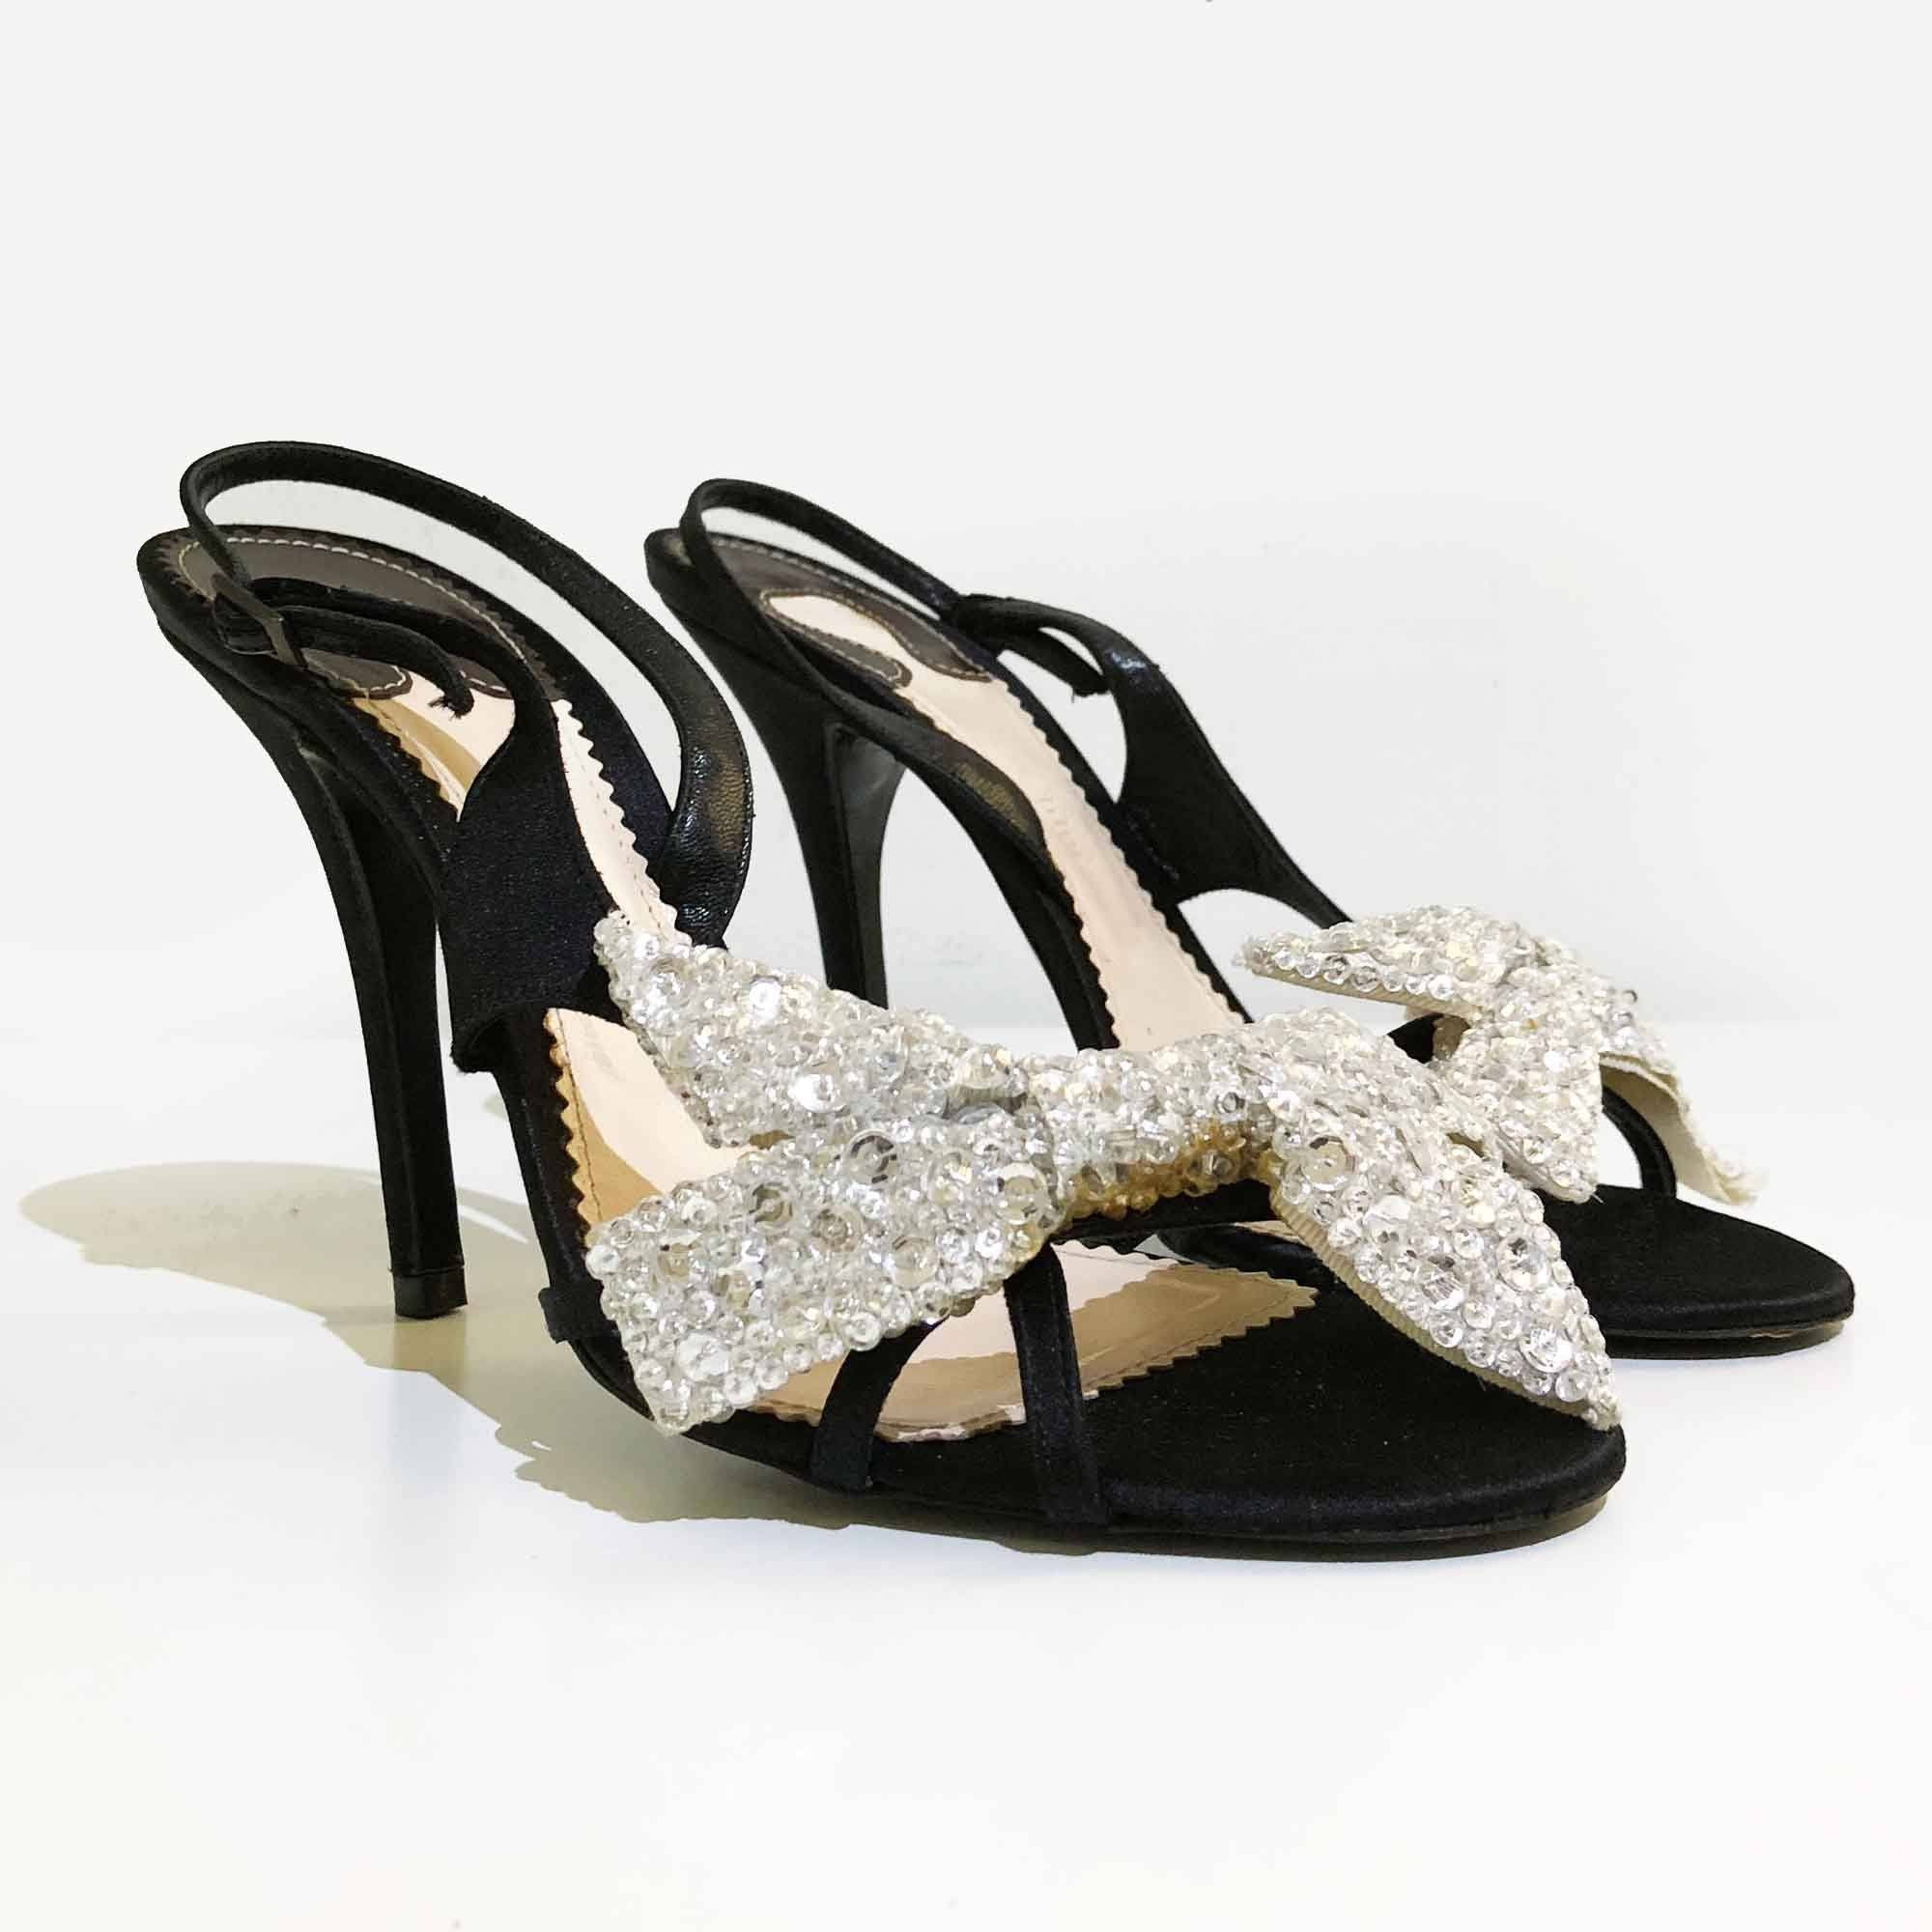 Chloe Beaded Bow Satin Sandal Heels